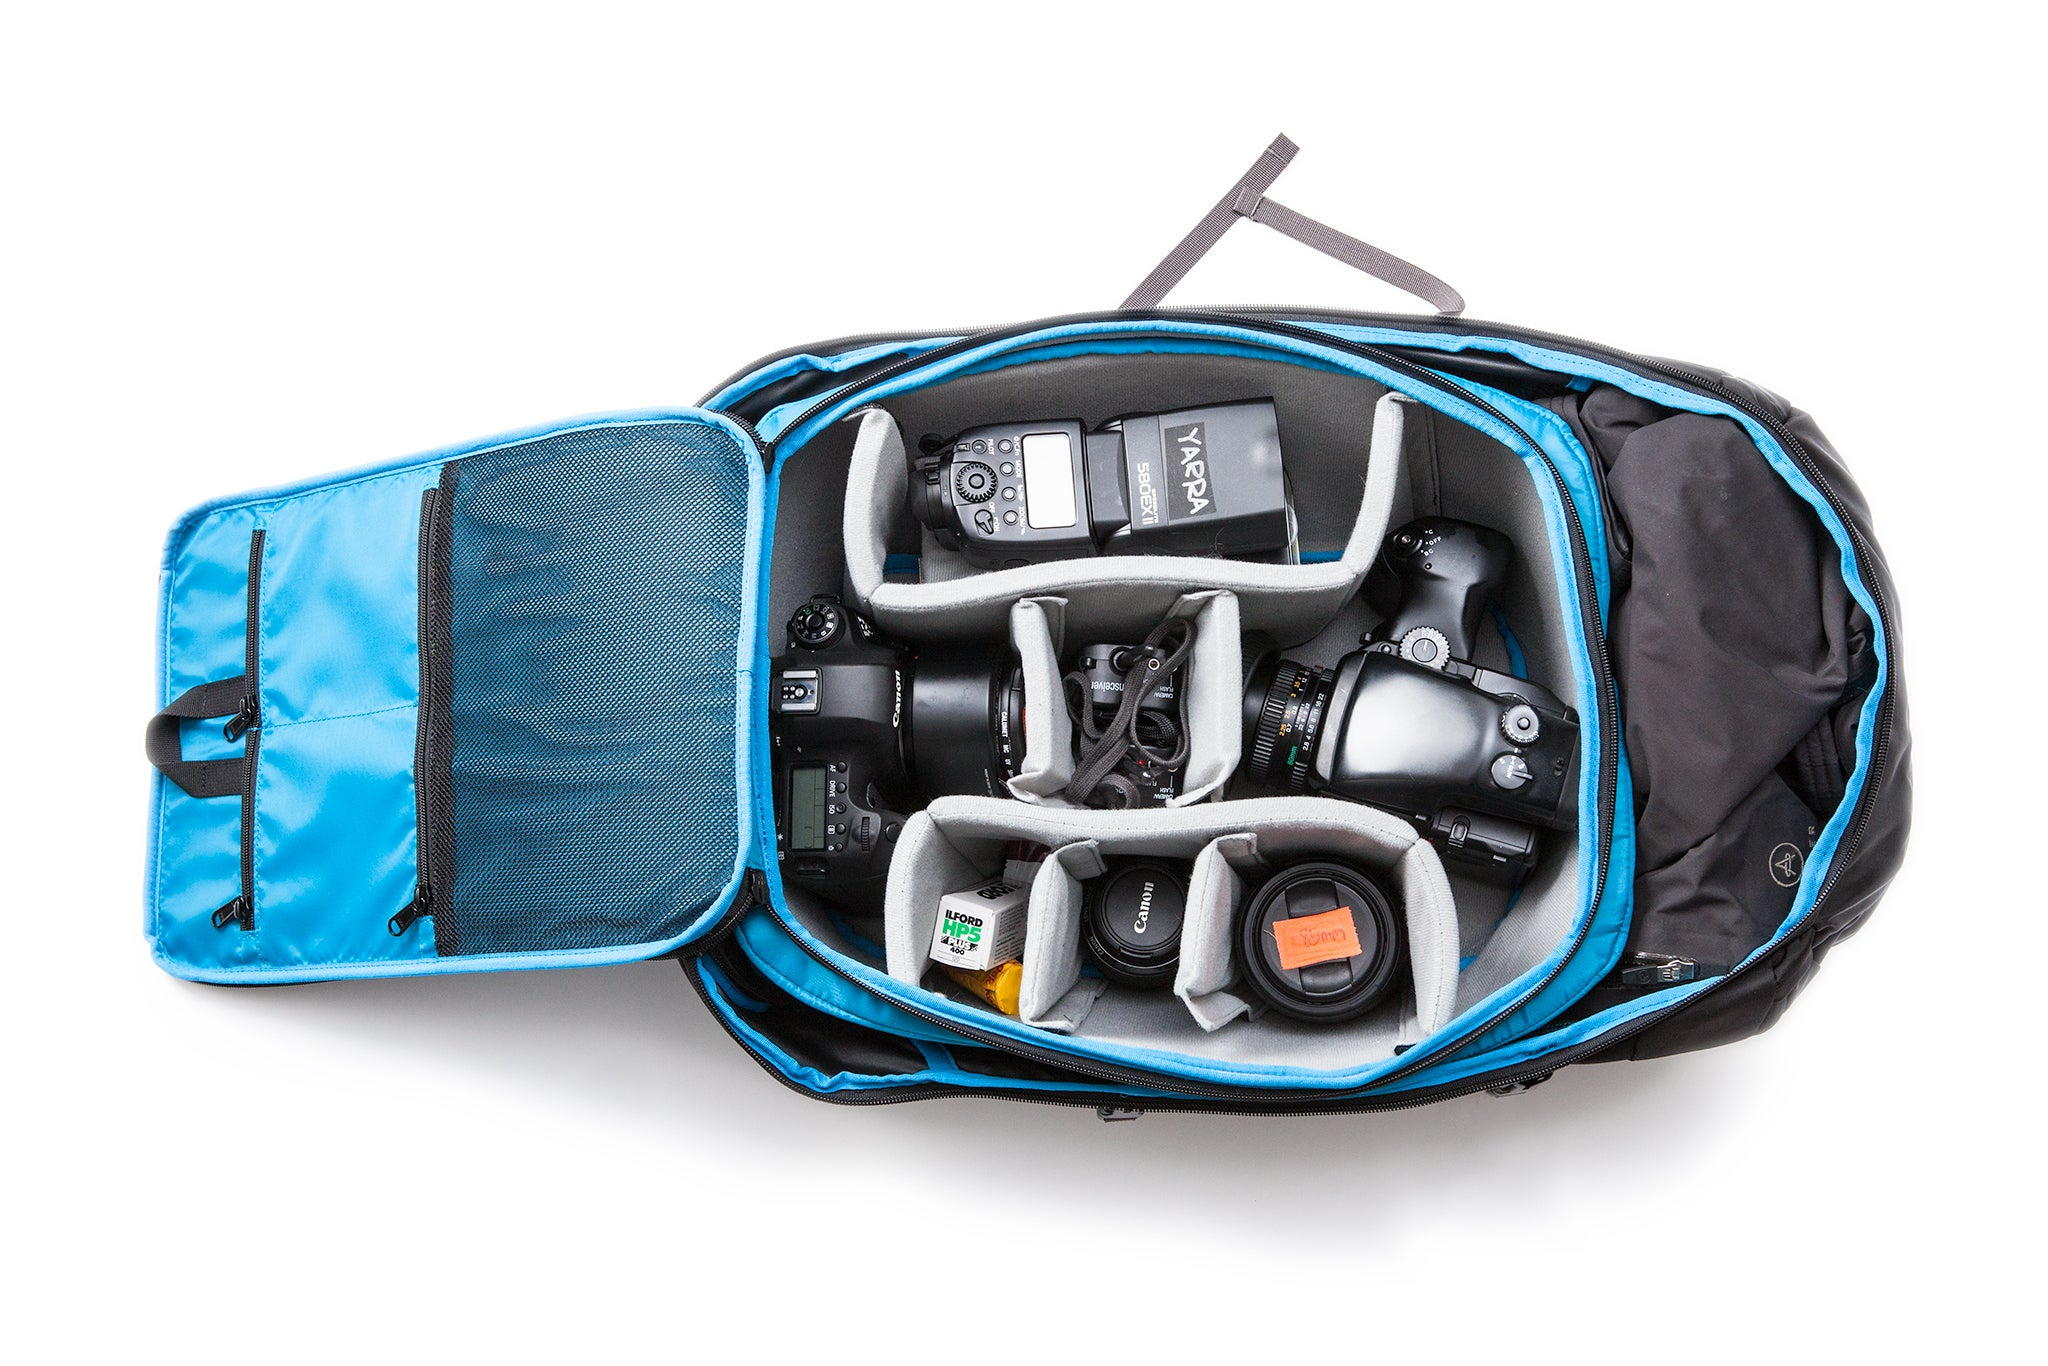 The Ultimate Photographer's Backpack?